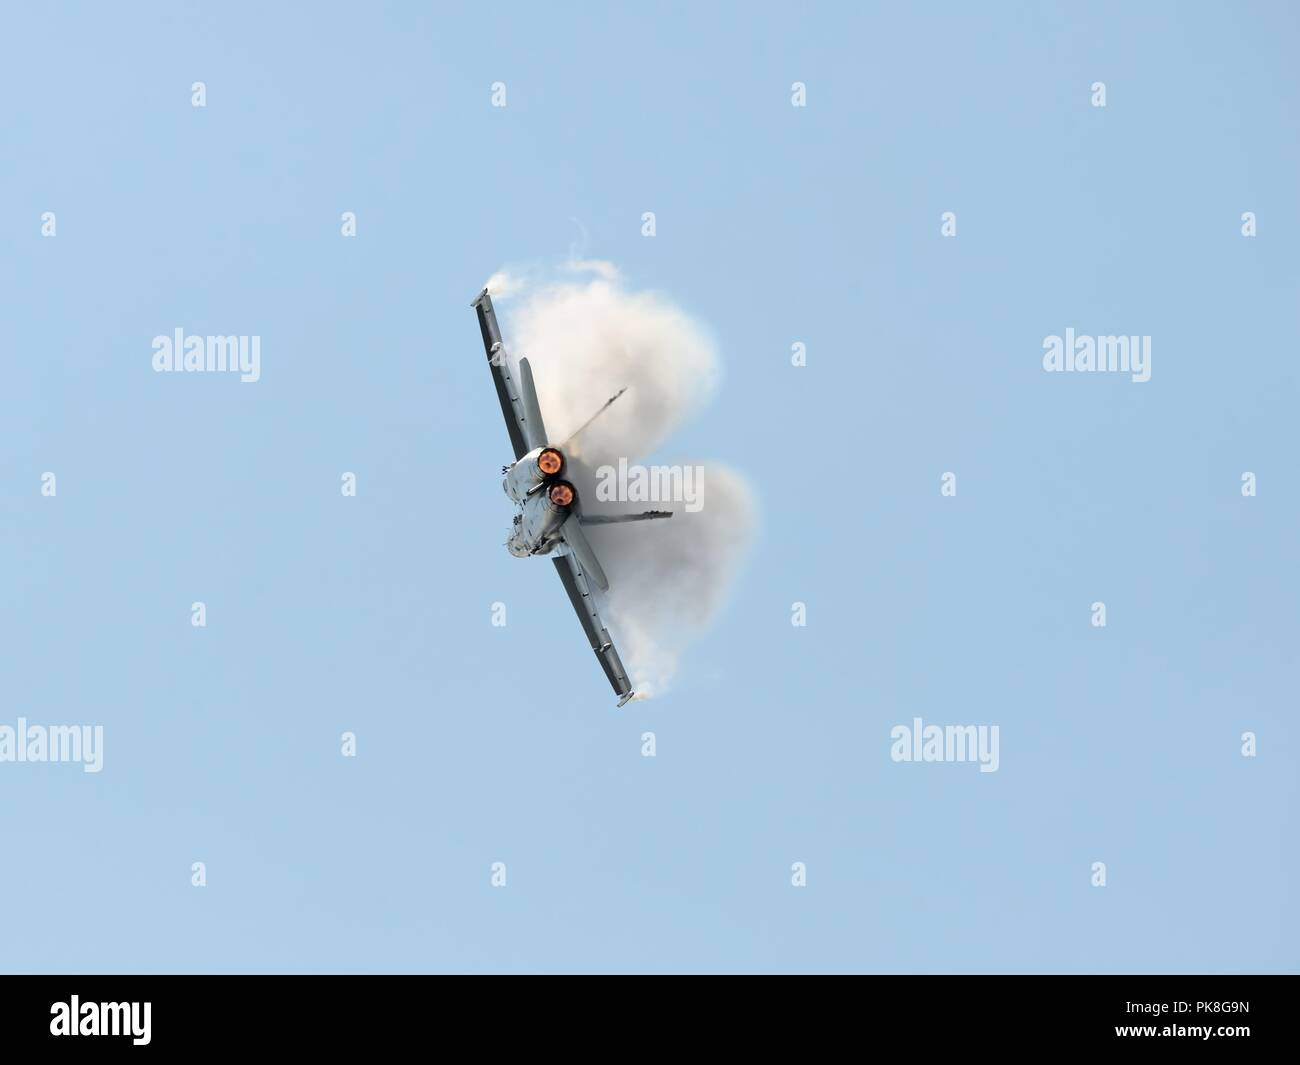 A Swiss Air Force McDonnell Douglas F/A-18C Hornet performing aerobatics at the Scottish International airshow - Stock Image